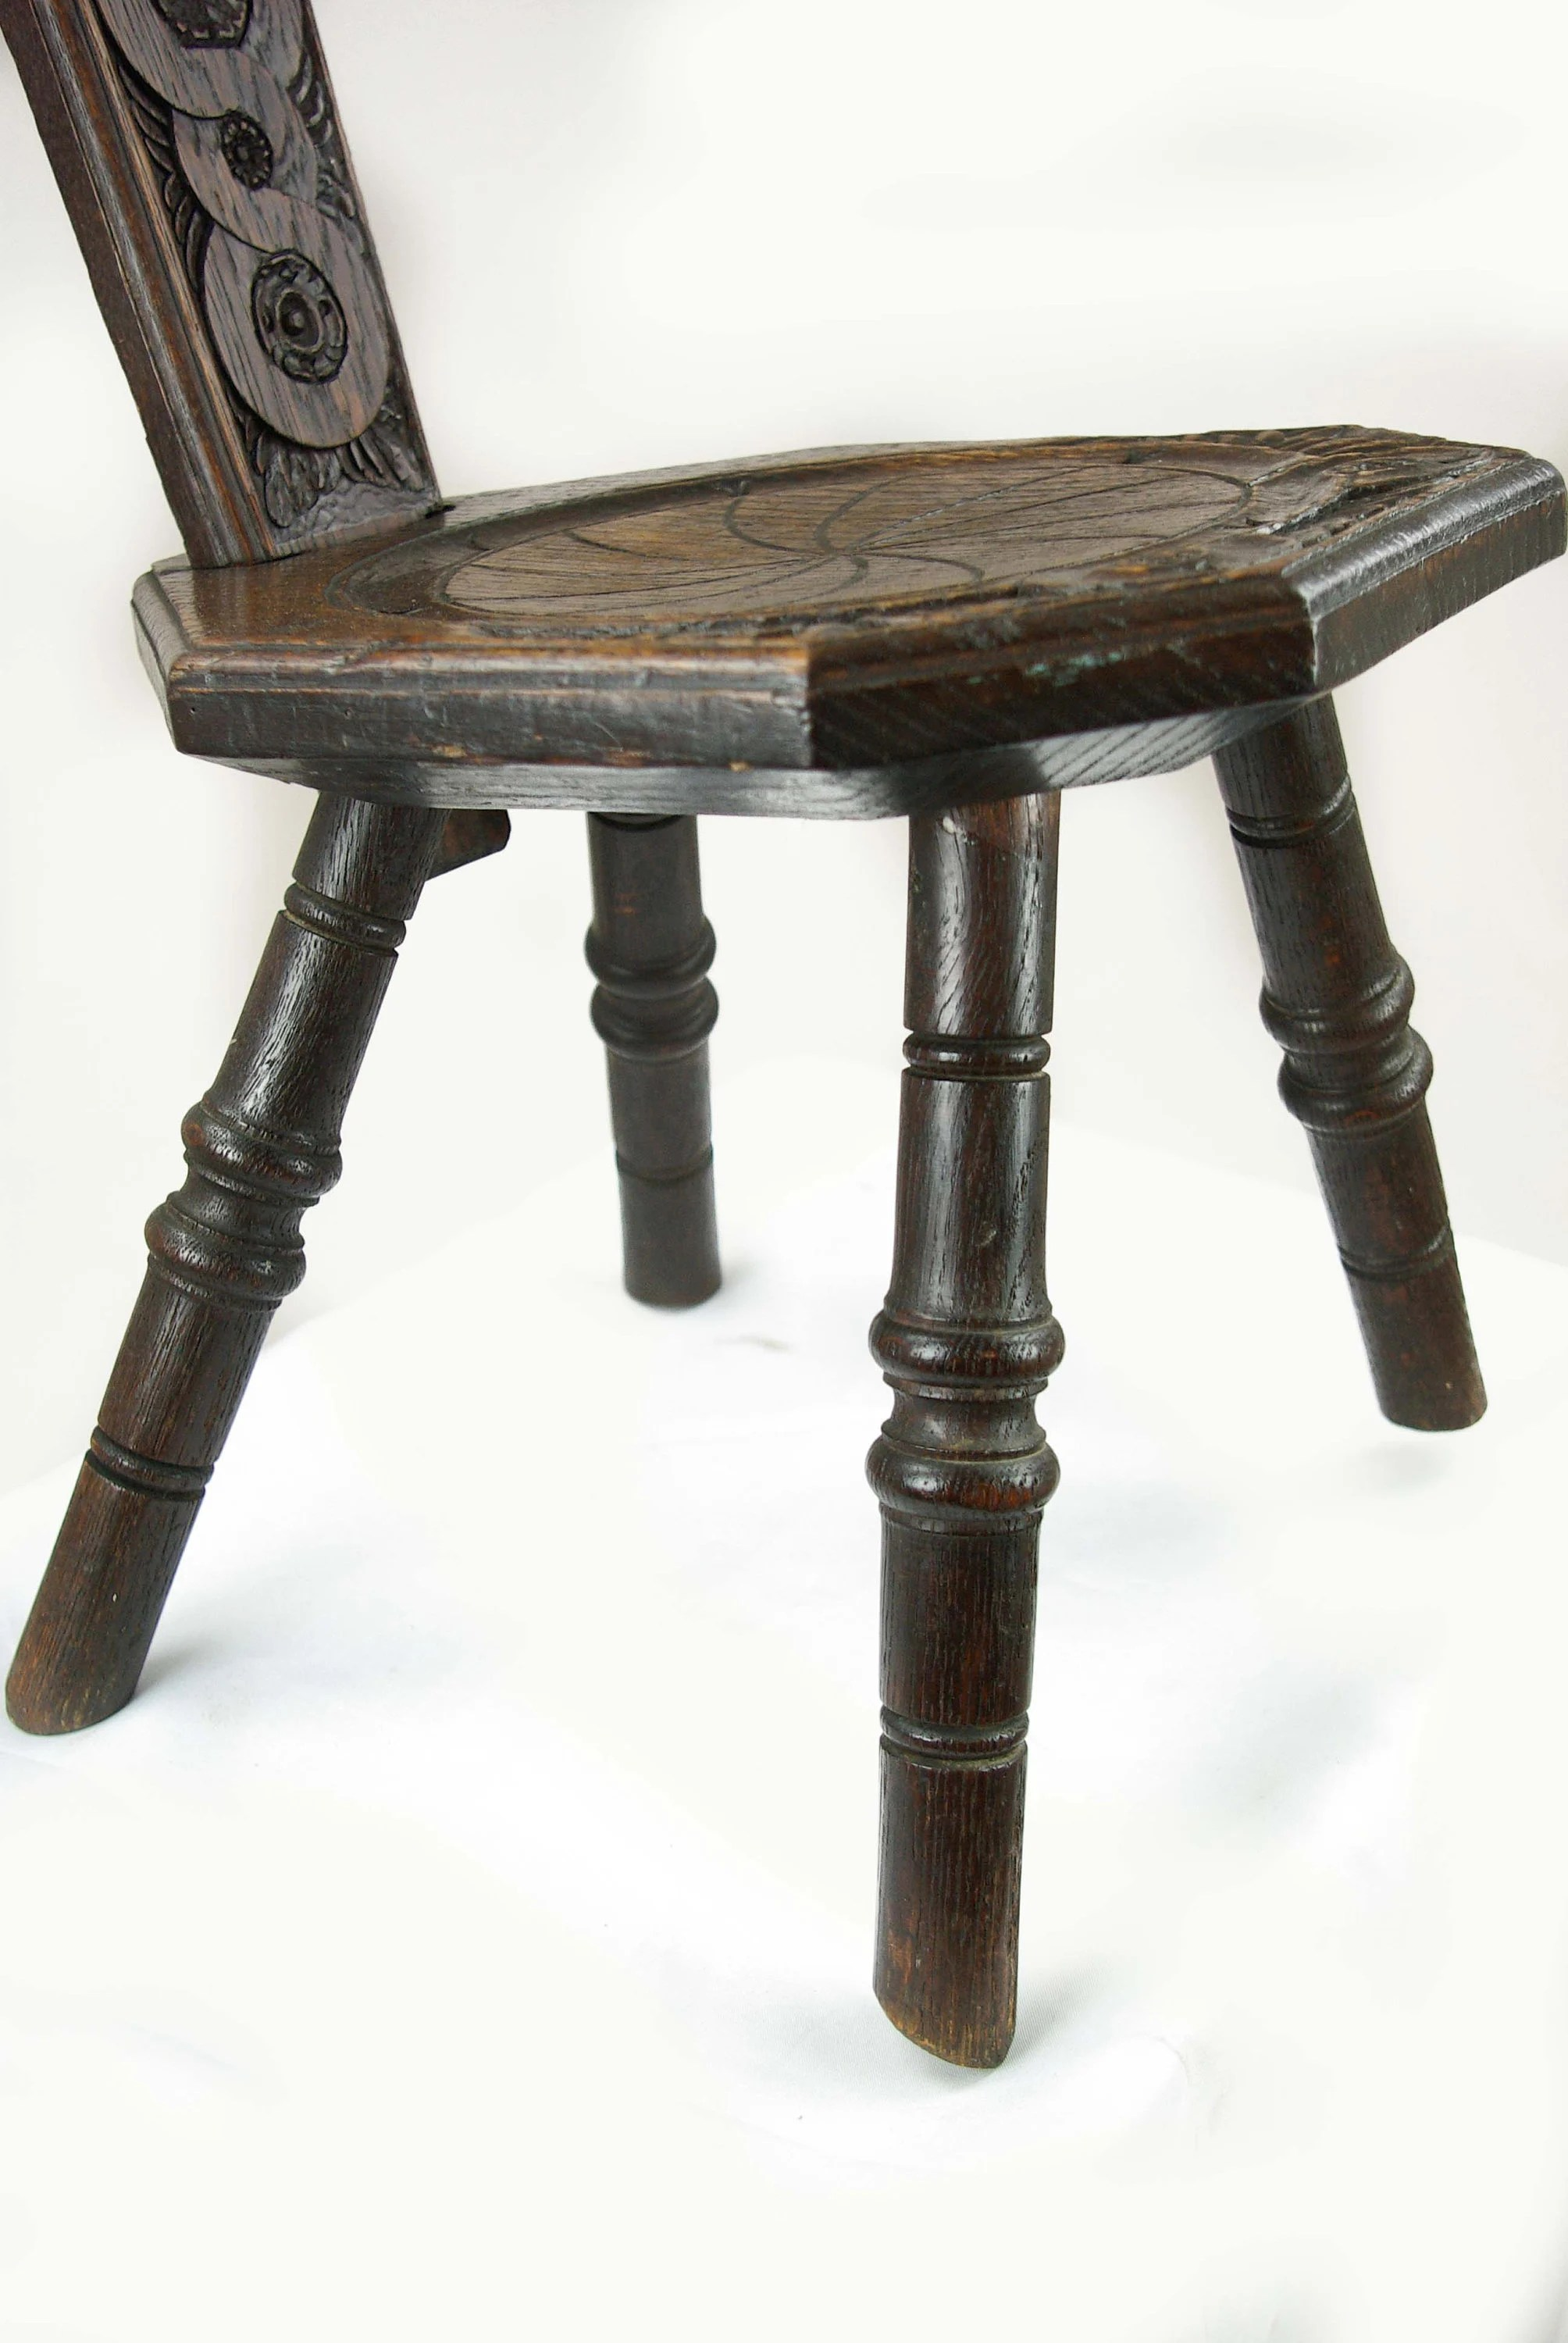 Spinning Chair Spinning Chair Antique Chair Carved Oak Chair Scotland 1880 Antique Furniture B1308